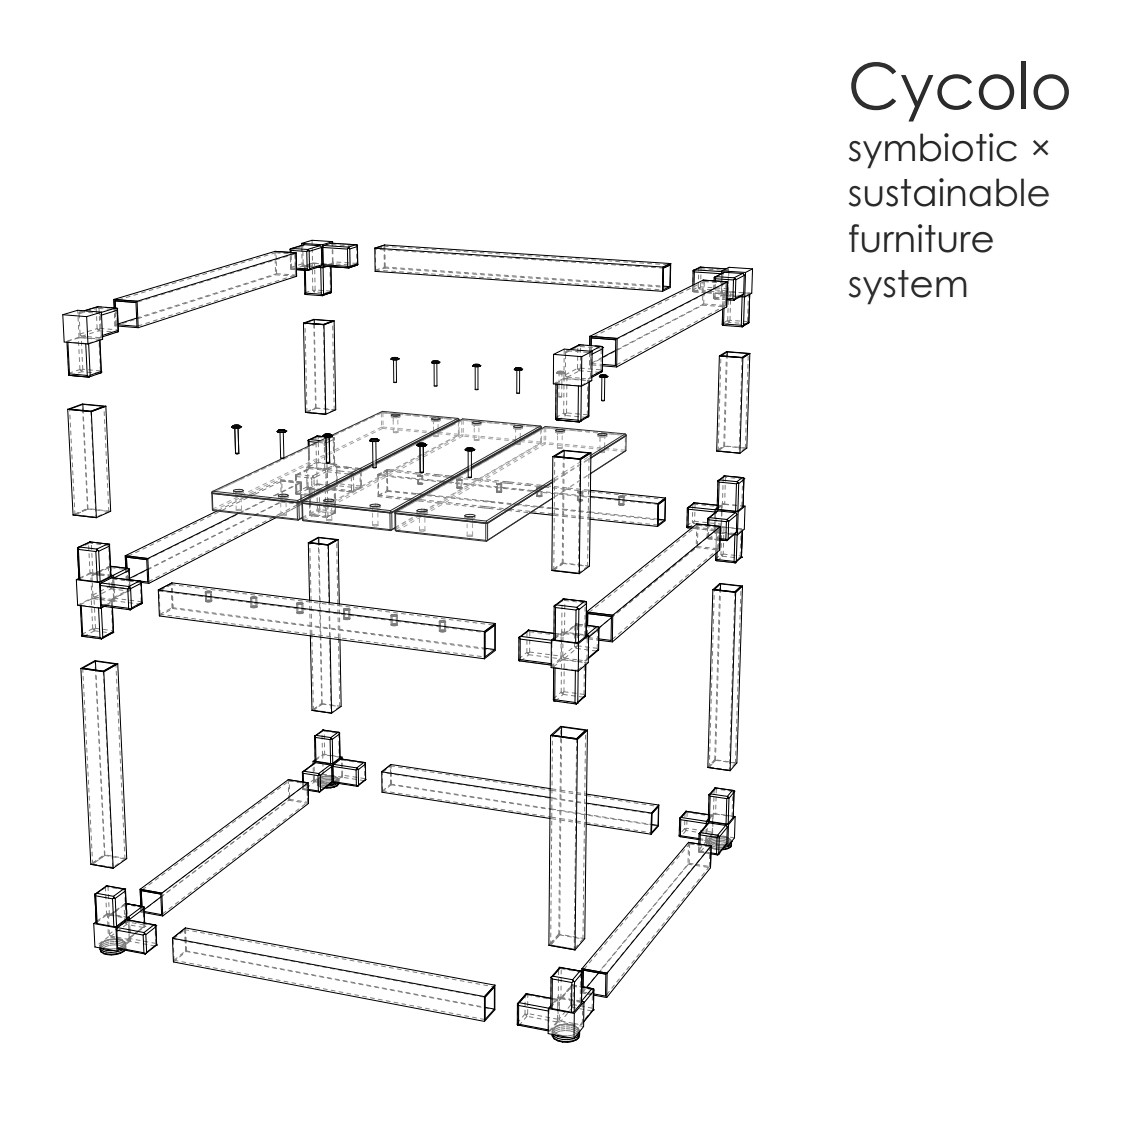 Cycolo%20Sustainabile%20Design%20Lab.jpg